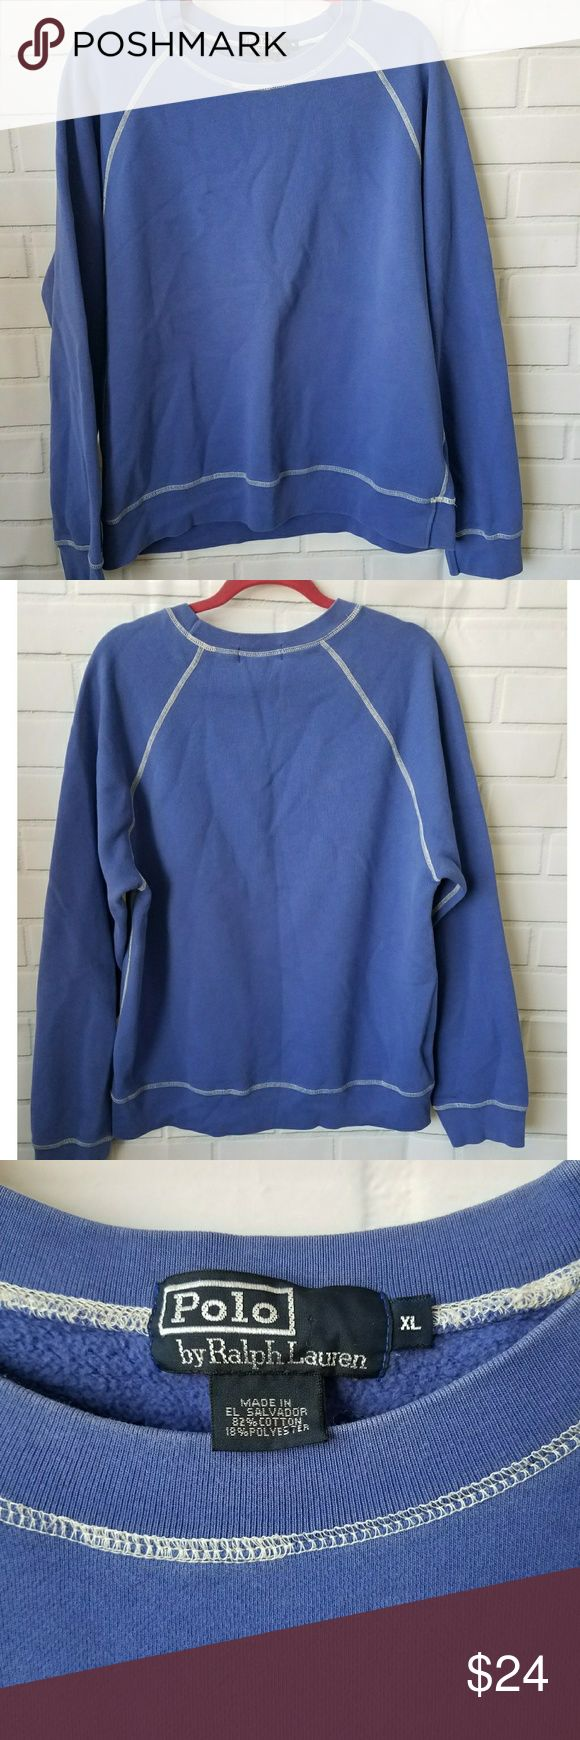 Polo Ralph Lauren crewneck sweatshirt blue purple Polo by Ralph Lauren crewneck sweatshirt size XL, great condition! Periwinkle blue / purple color with white thread visible stiching. Polo by Ralph Lauren Shirts Sweatshirts & Hoodies